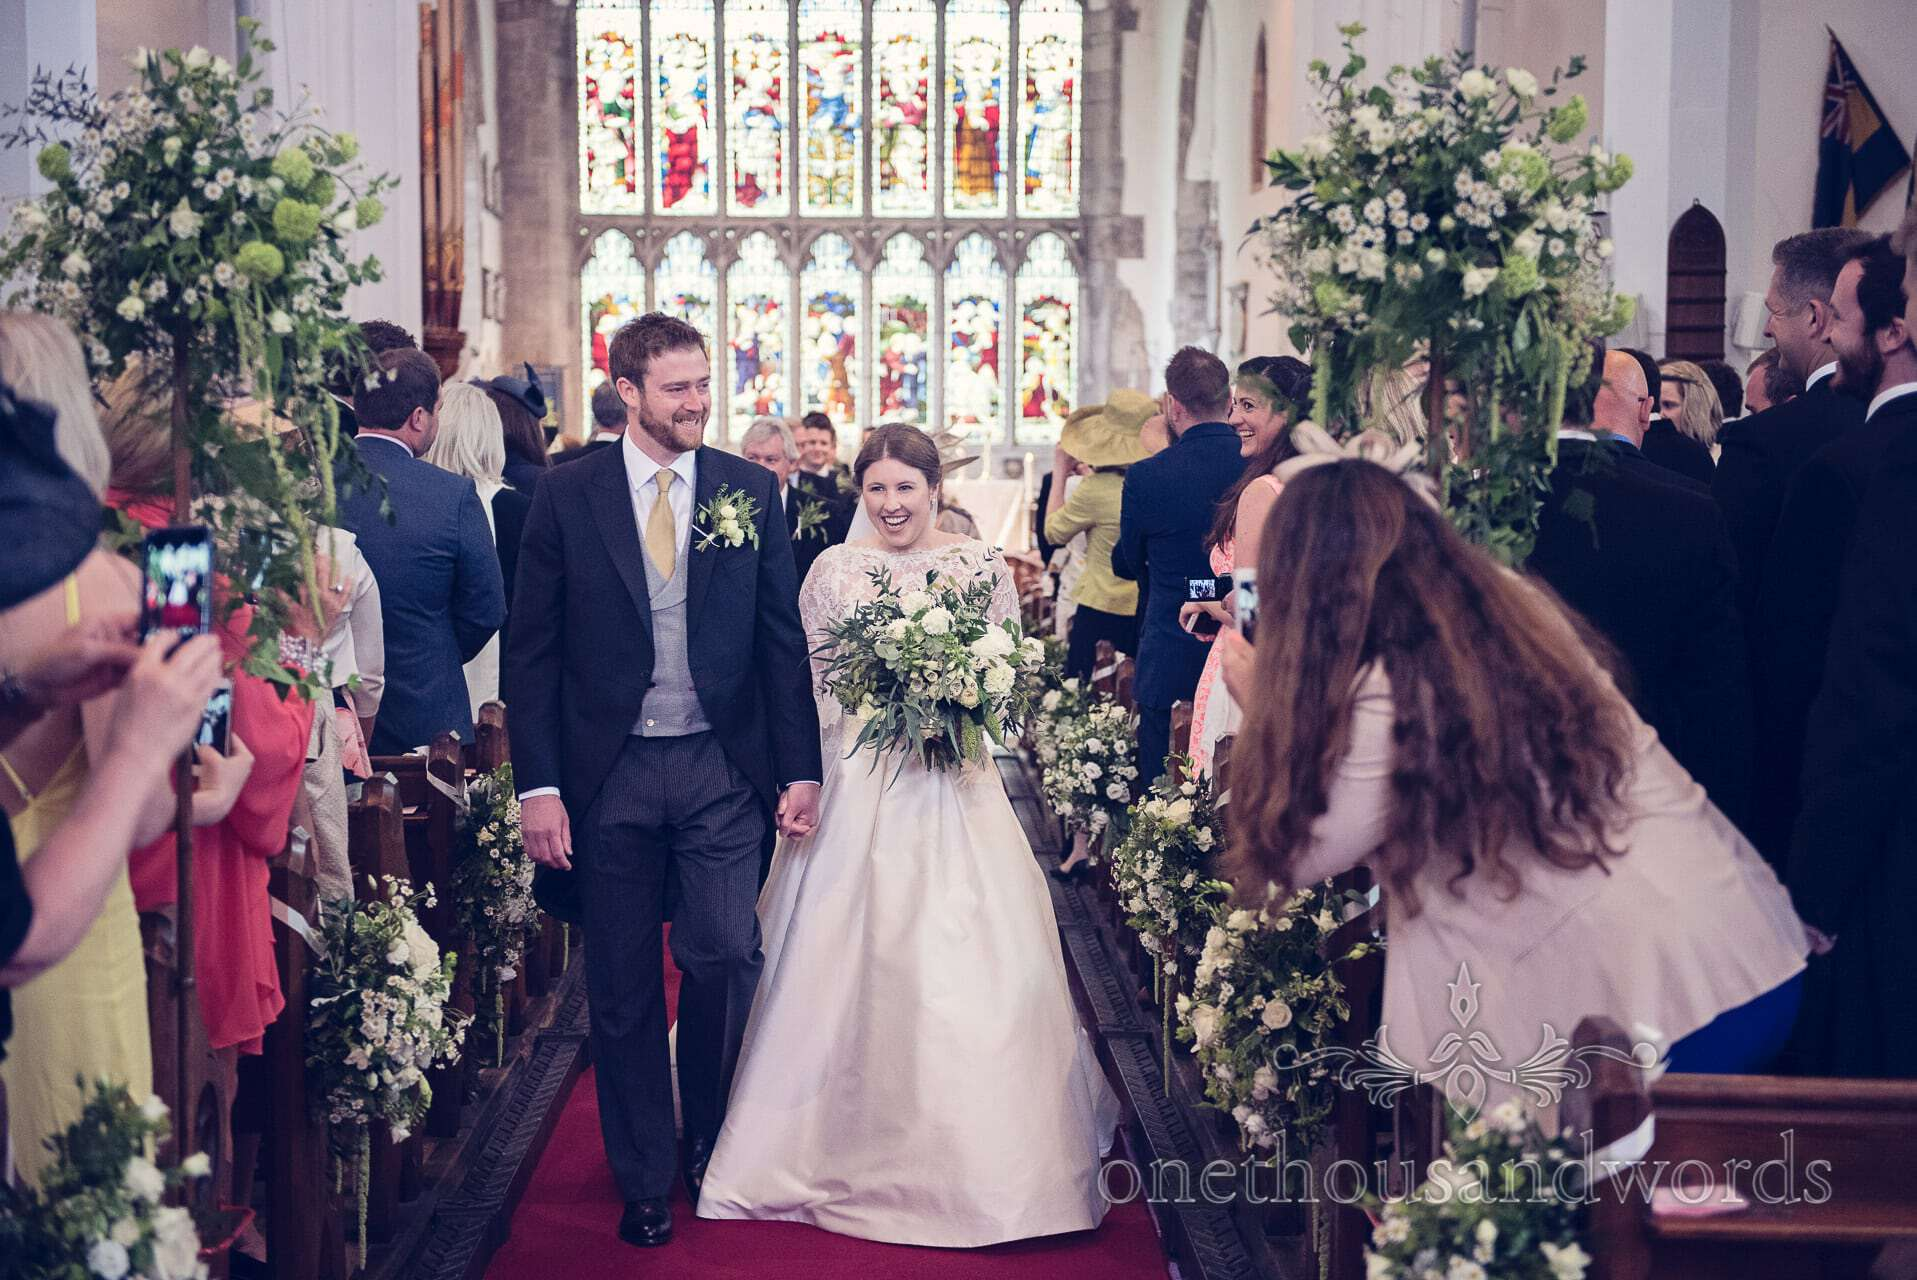 Bride and groom walk down the aisle at St Mary's church Wareham